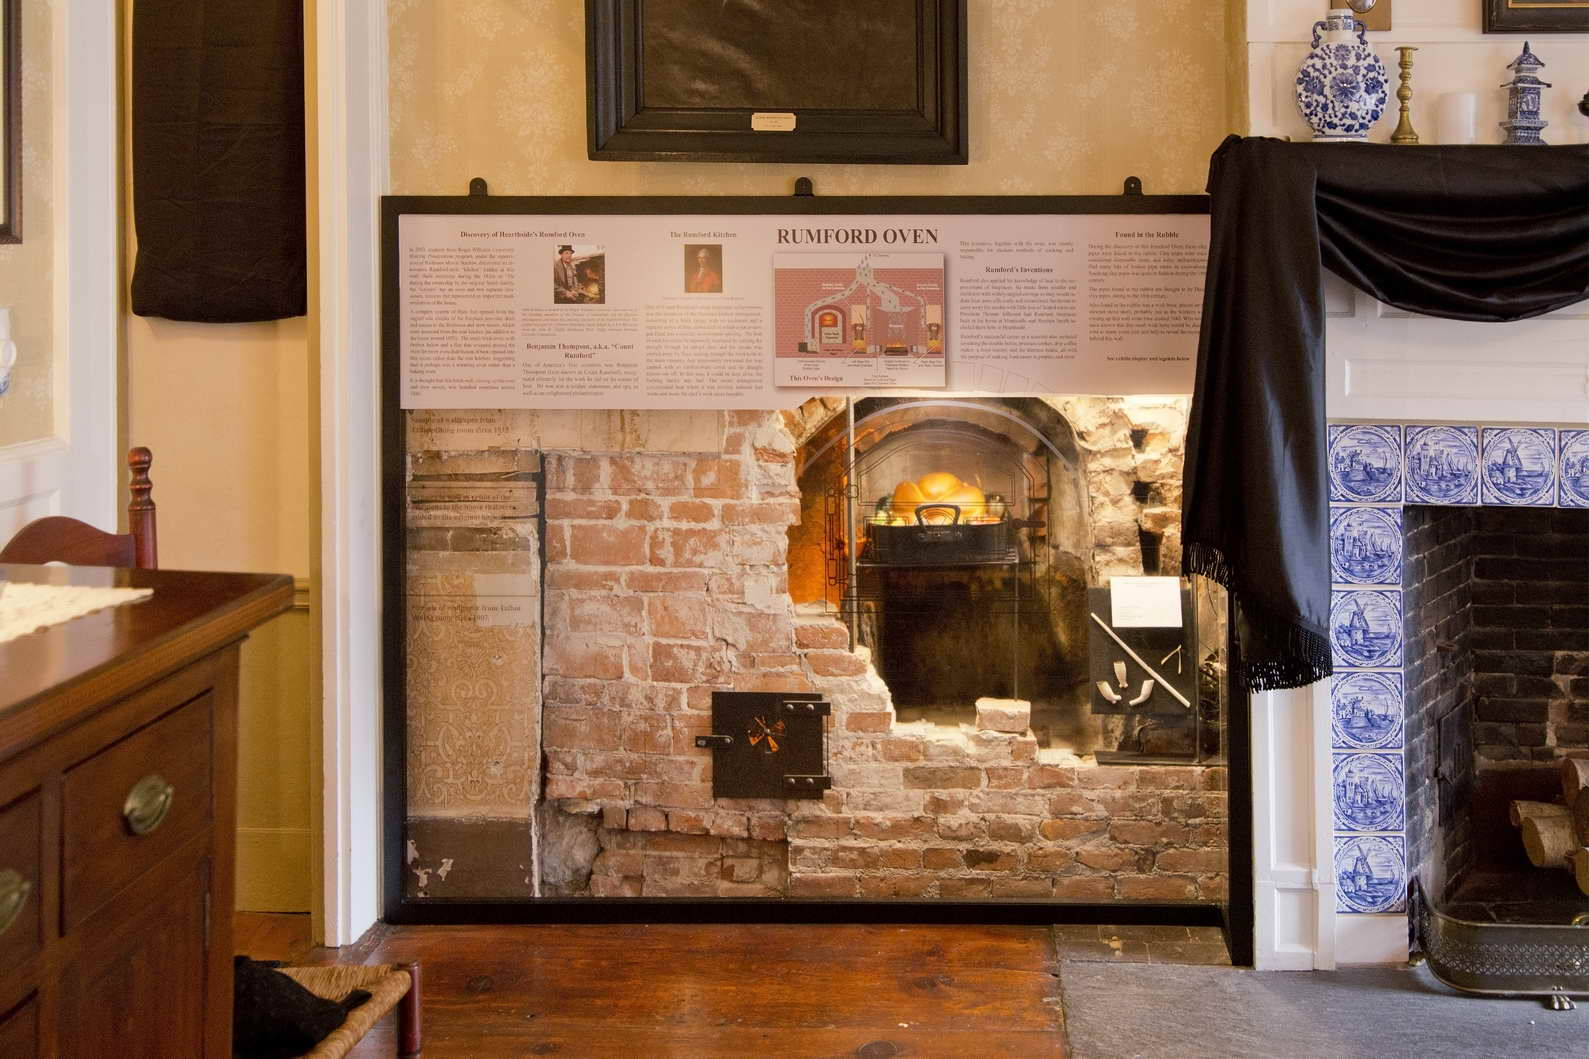 about preservation interior rumford oven 1589x1059 jpg